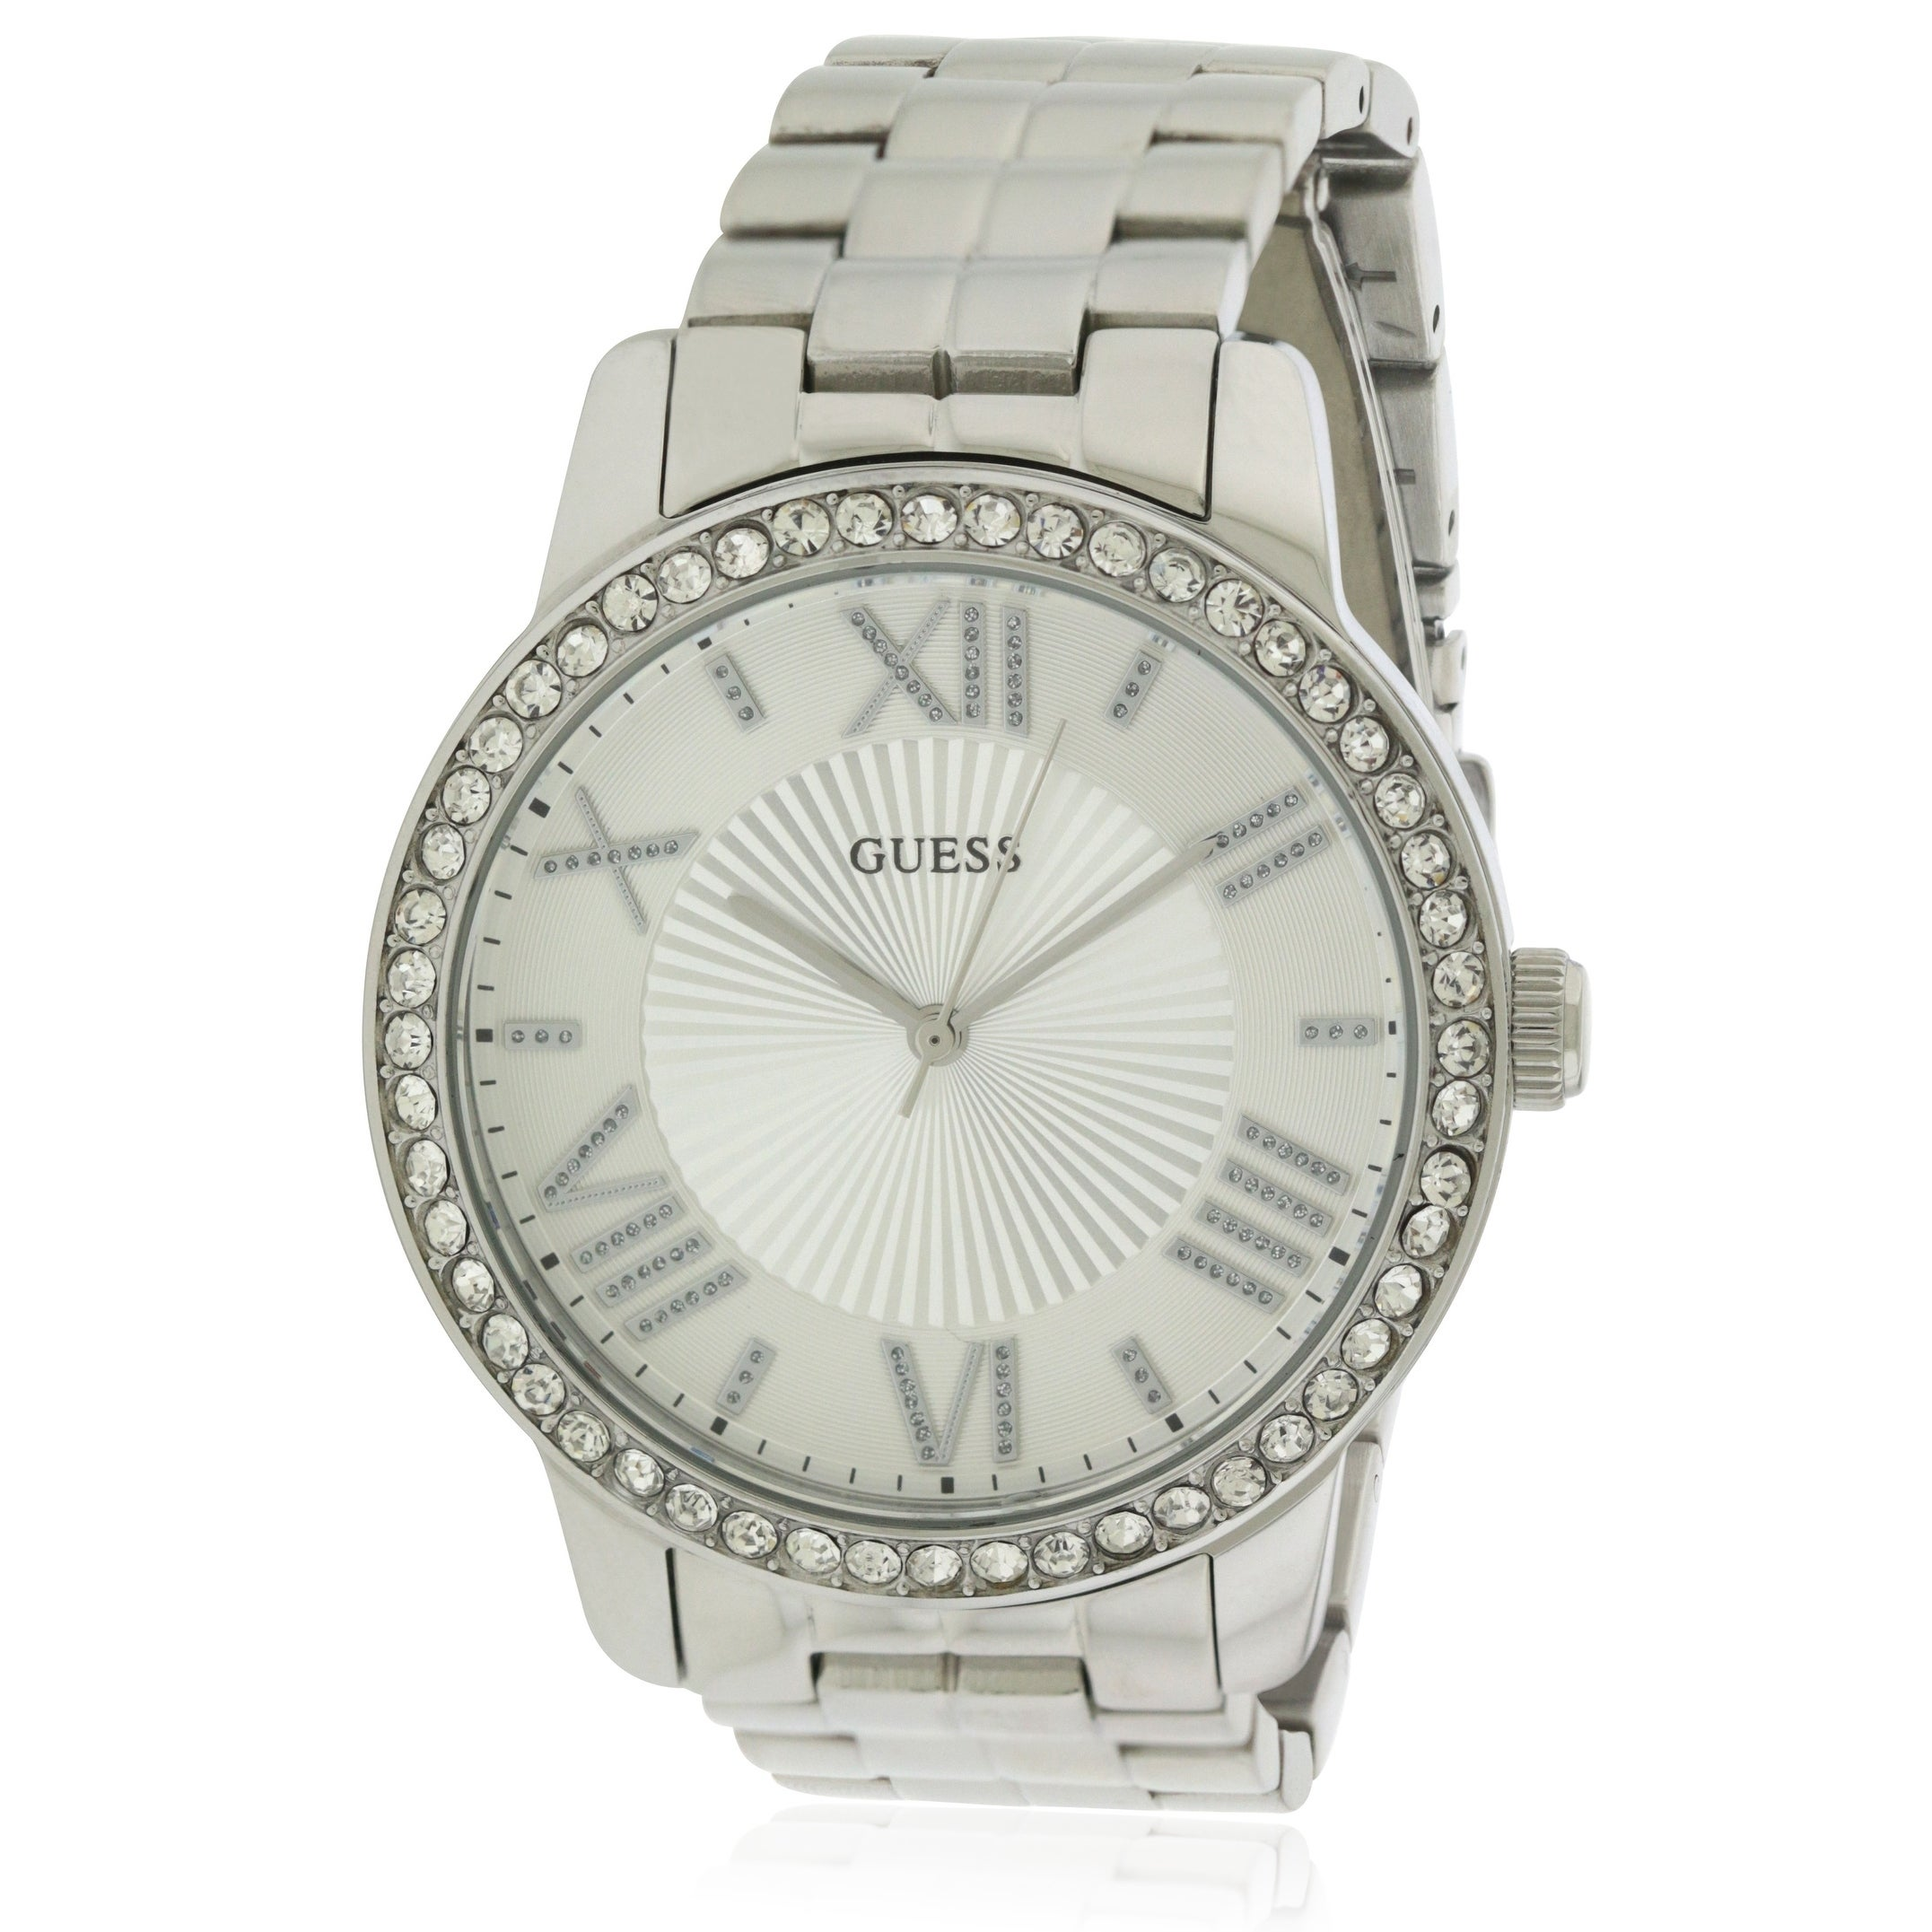 Guess Stainless Steel Ladies Watch U0329L1, White, Size O...